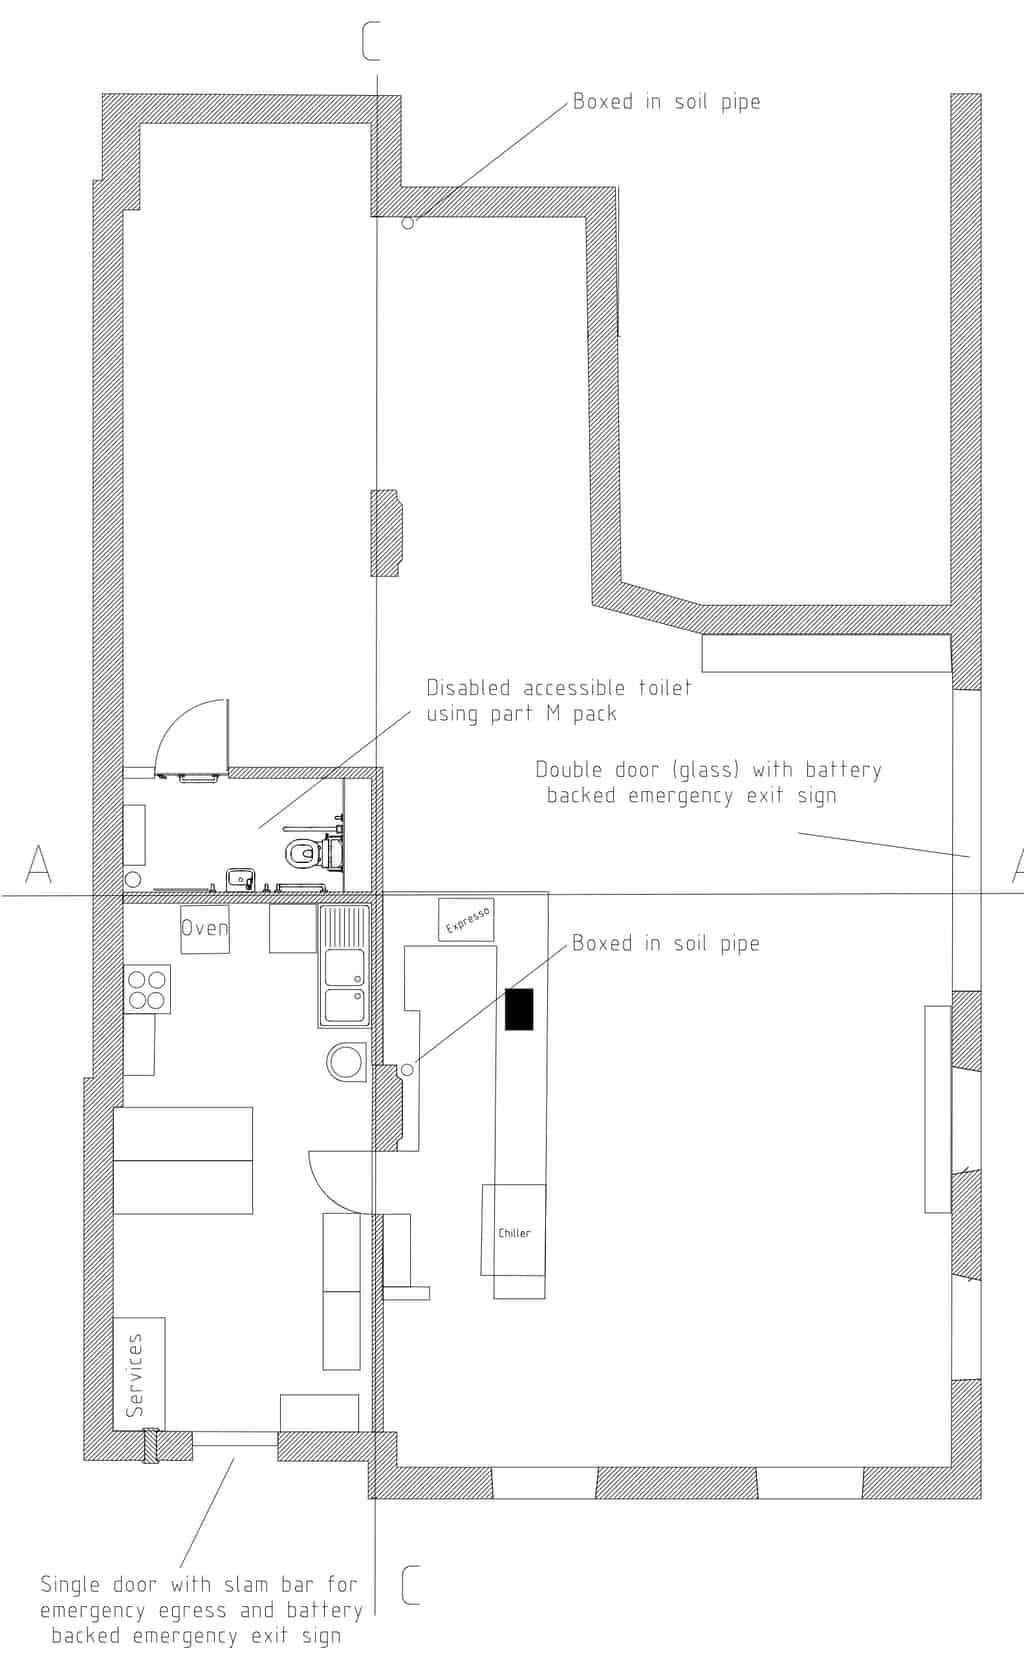 Proposed cafe plan